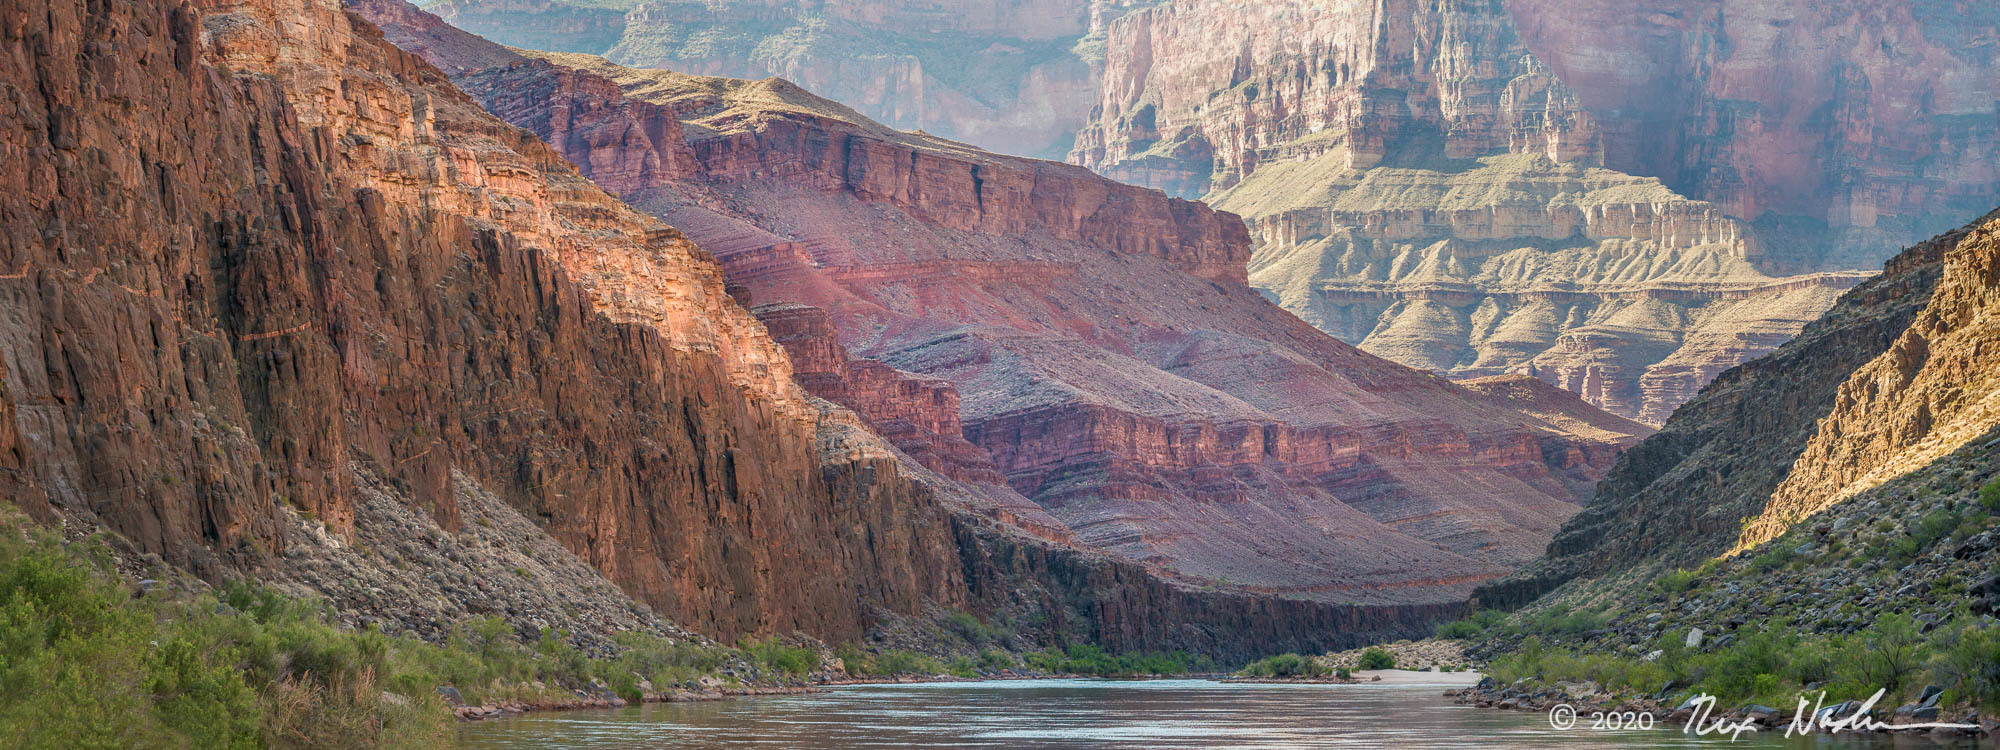 Sweep of Time - Colorado River